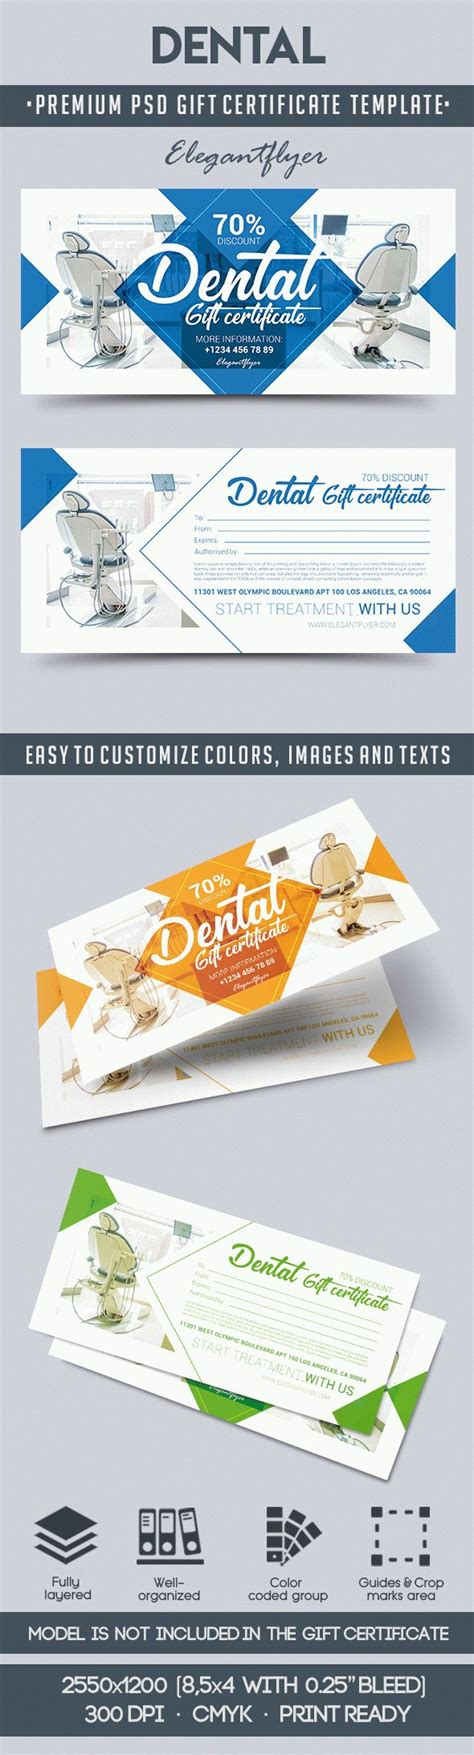 dental gift certificate template dental gift voucher by elegantflyer